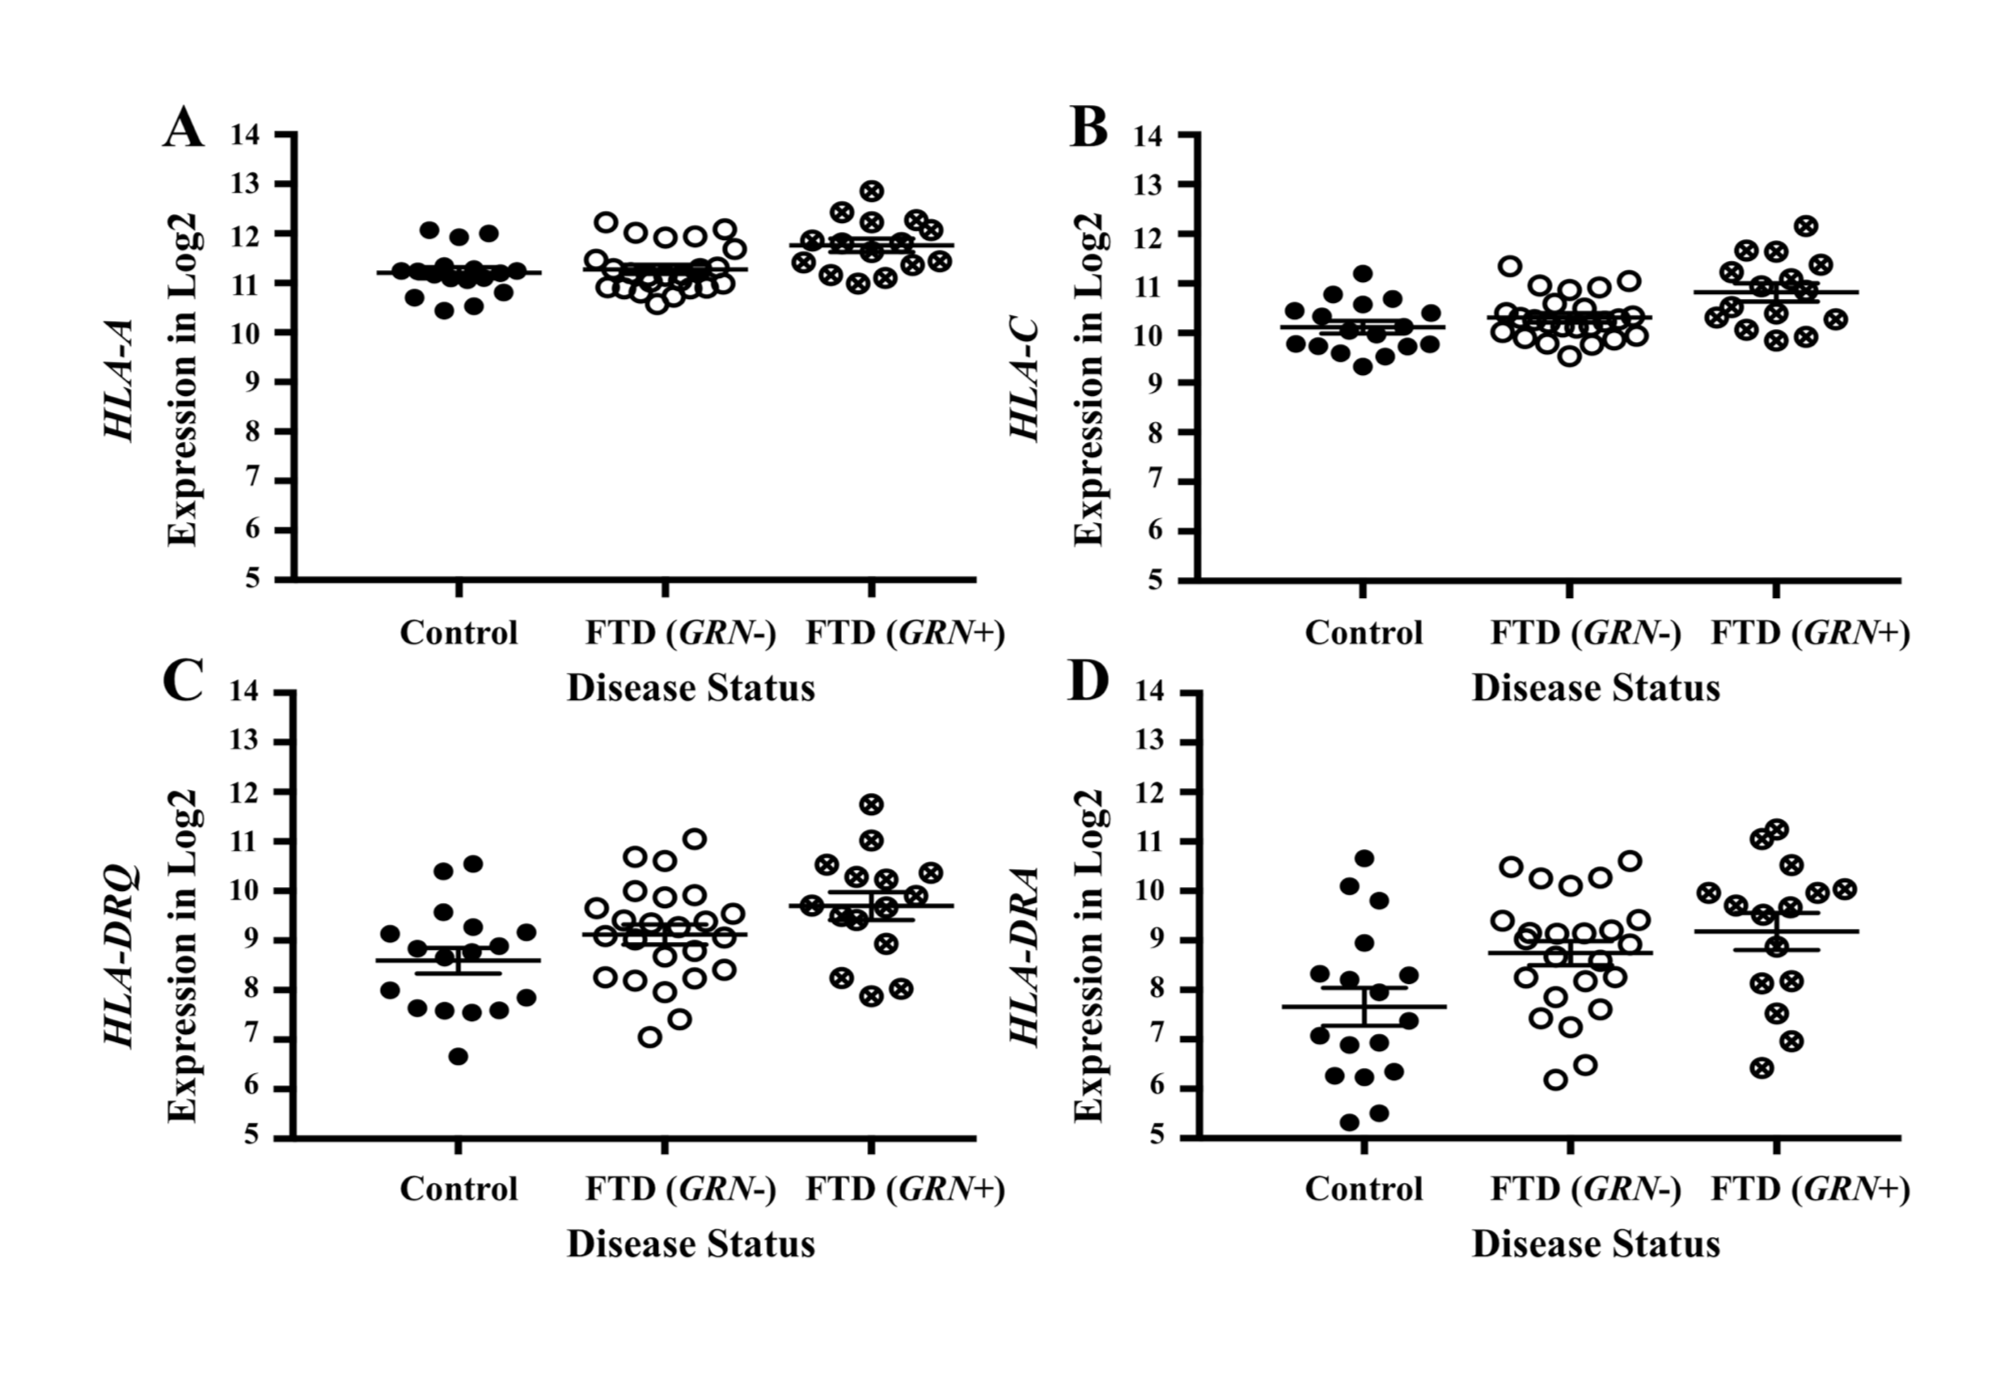 Pleiotropic genes between frontotemporal dementia (FTD) and immune-related diseases are elevated in brains of patients with FTD with <i>GRN</i> mutation.